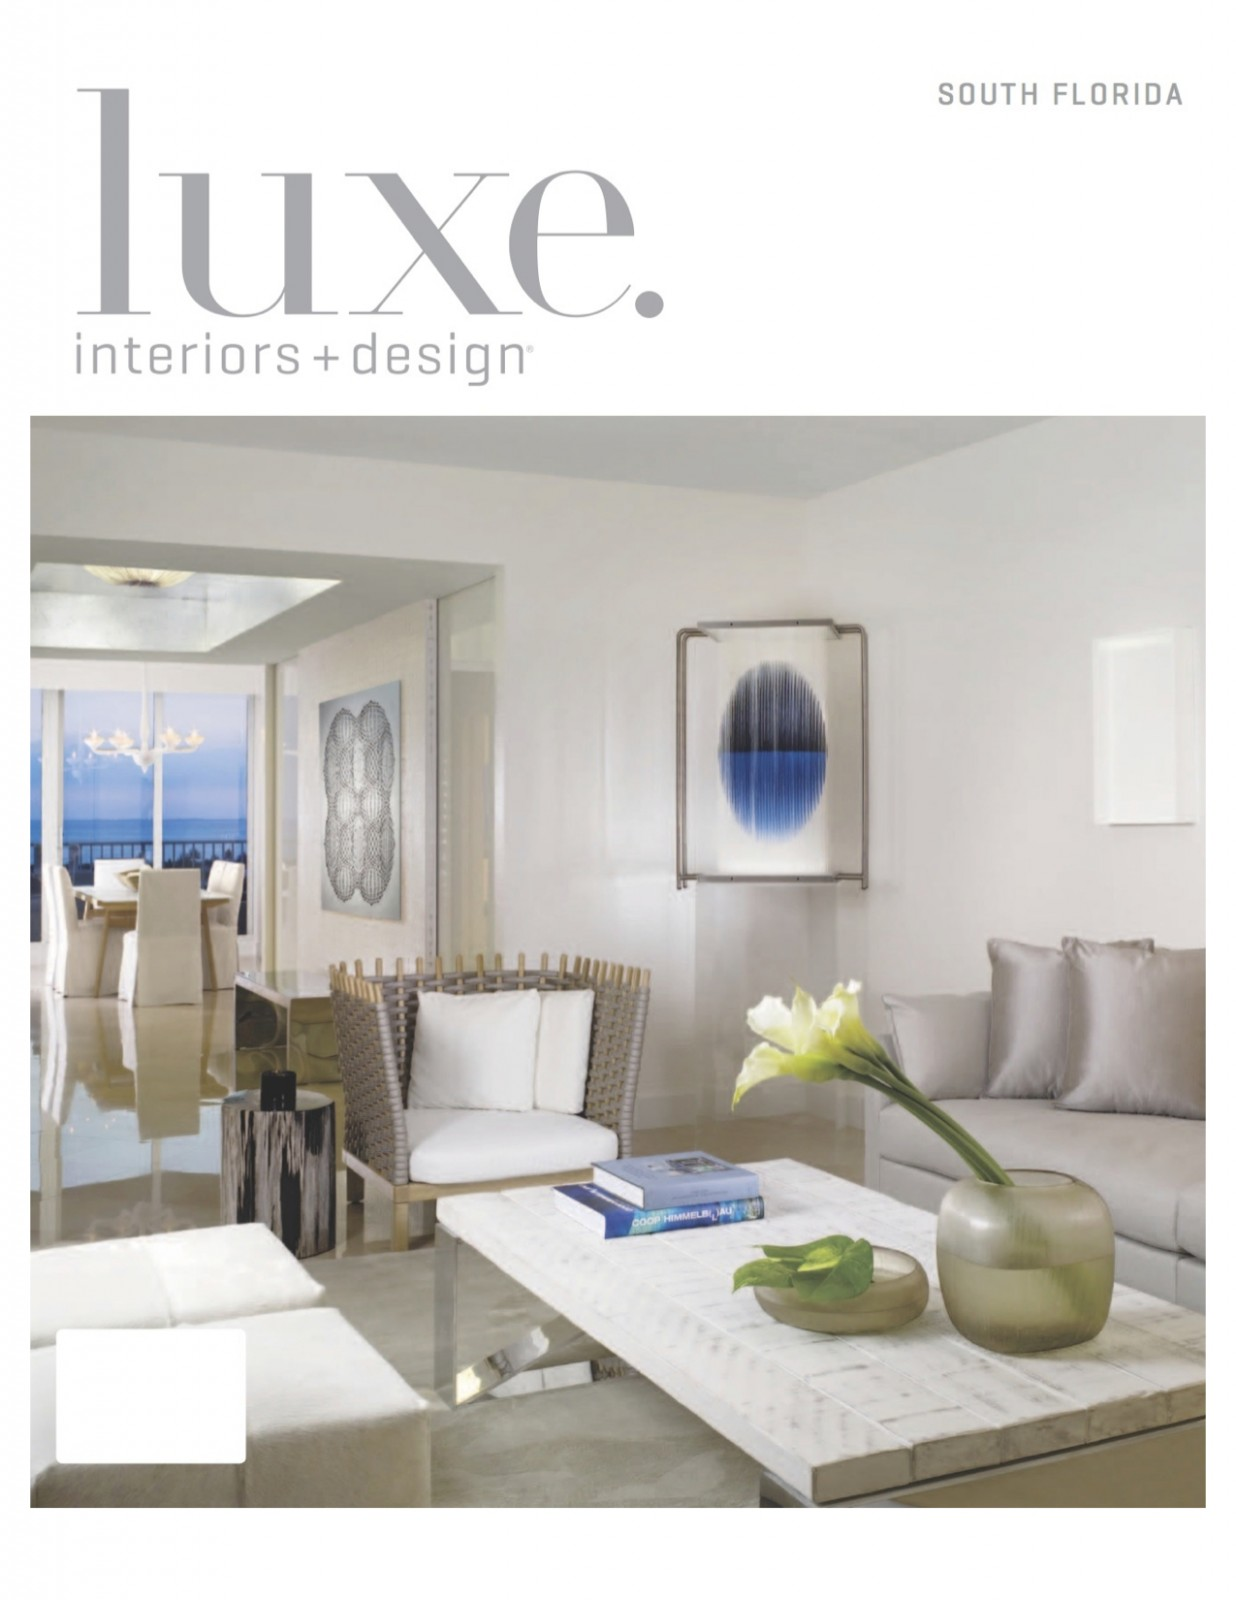 High Quality Luxe Interiors + Design